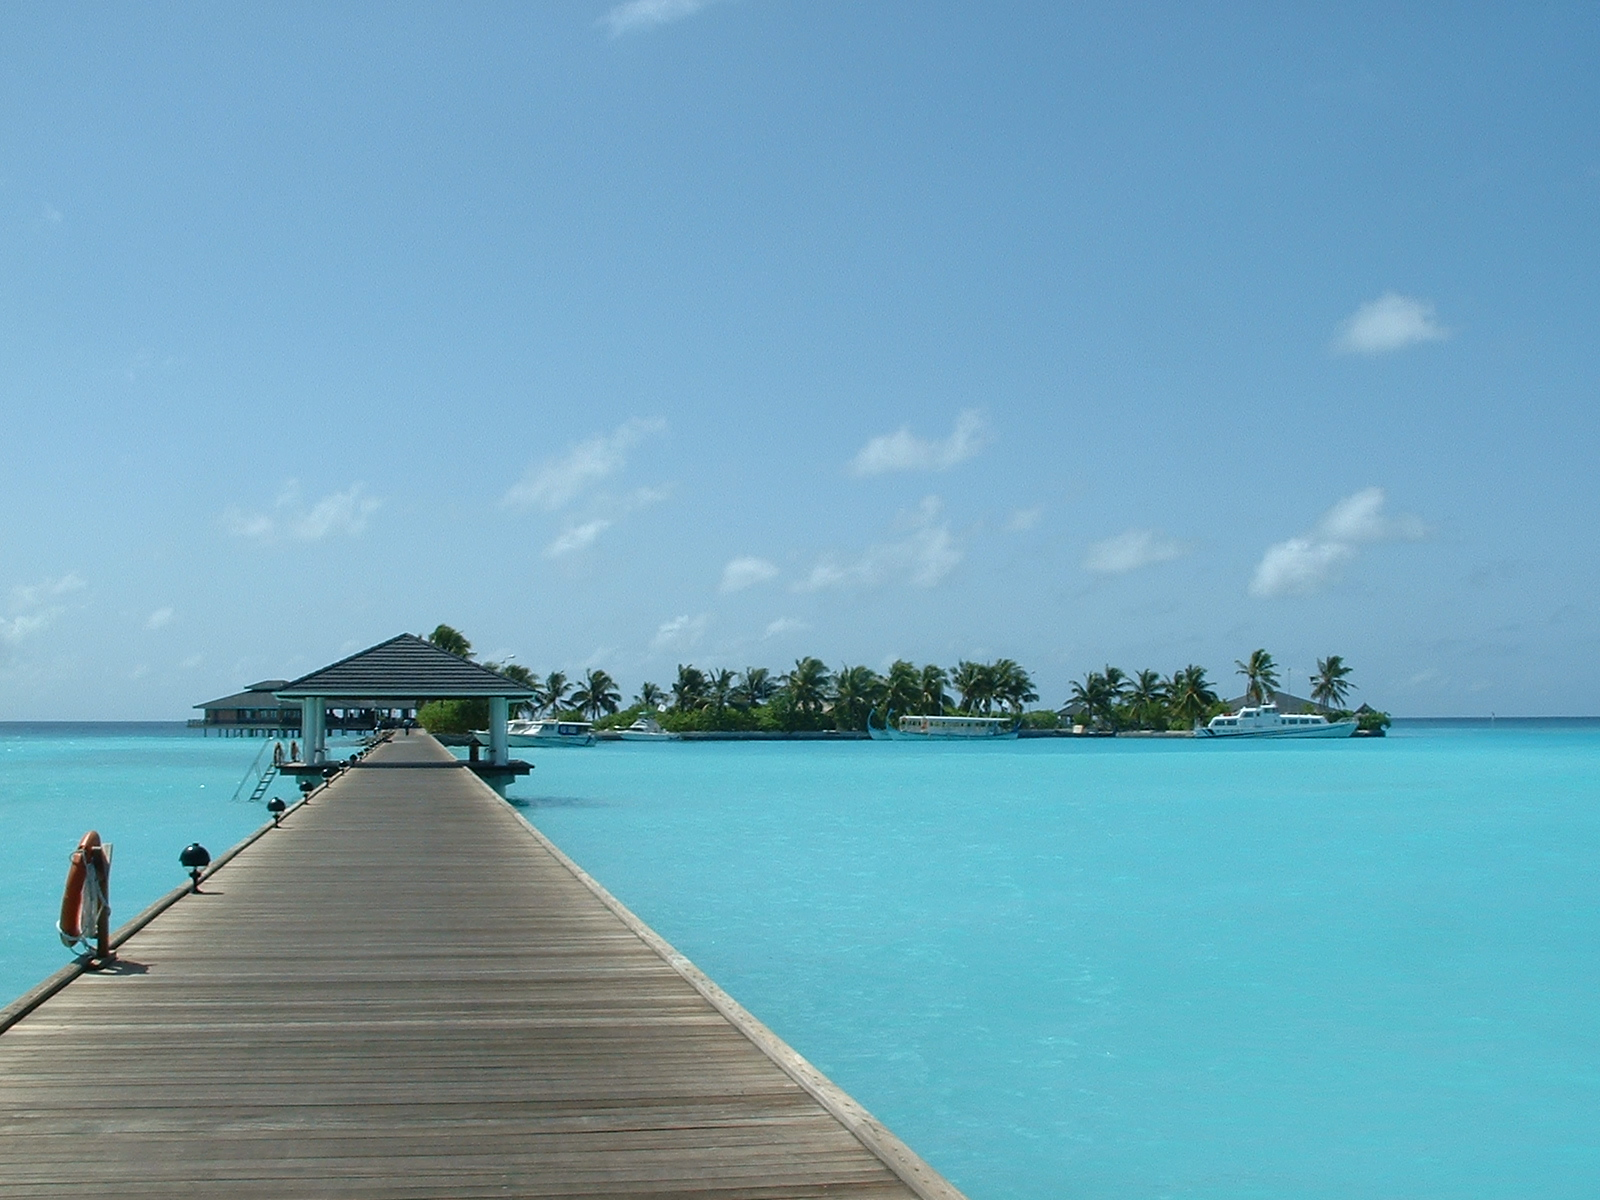 Sun Island Malediven © Henry / freeimages.com